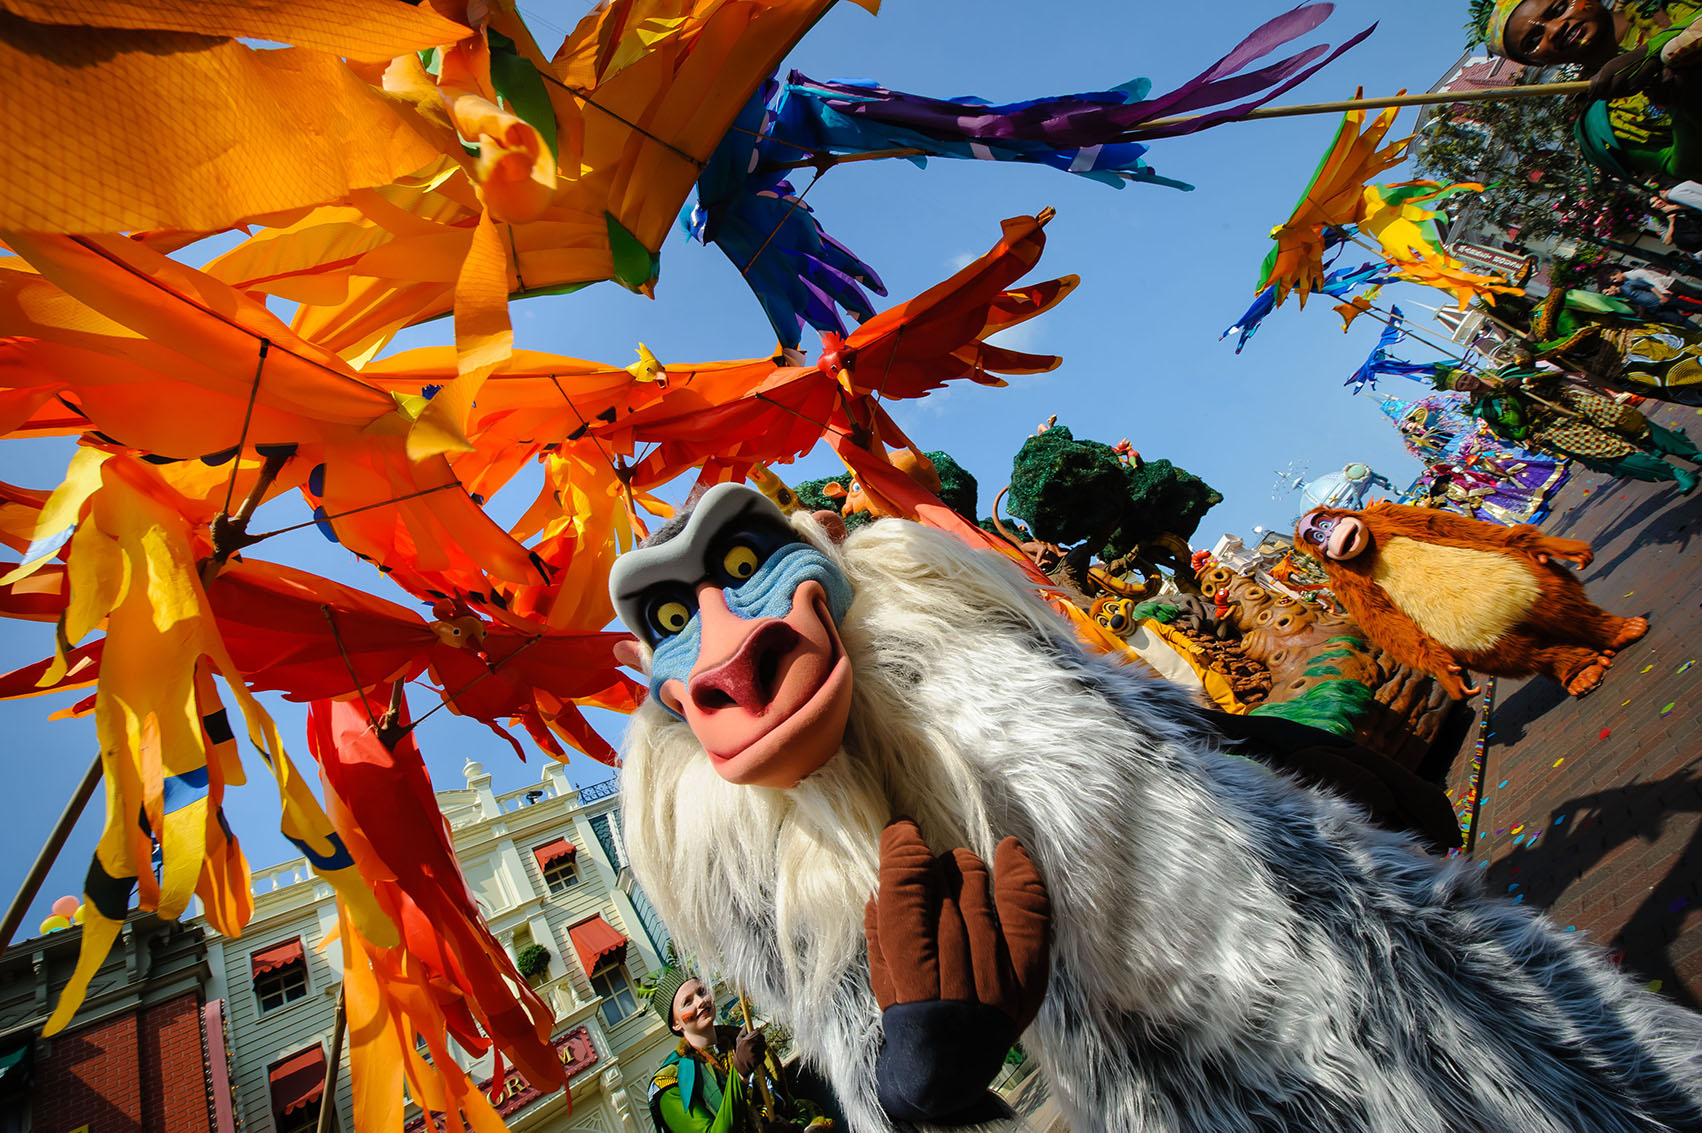 Festival of the Lion King at Disneyland Paris